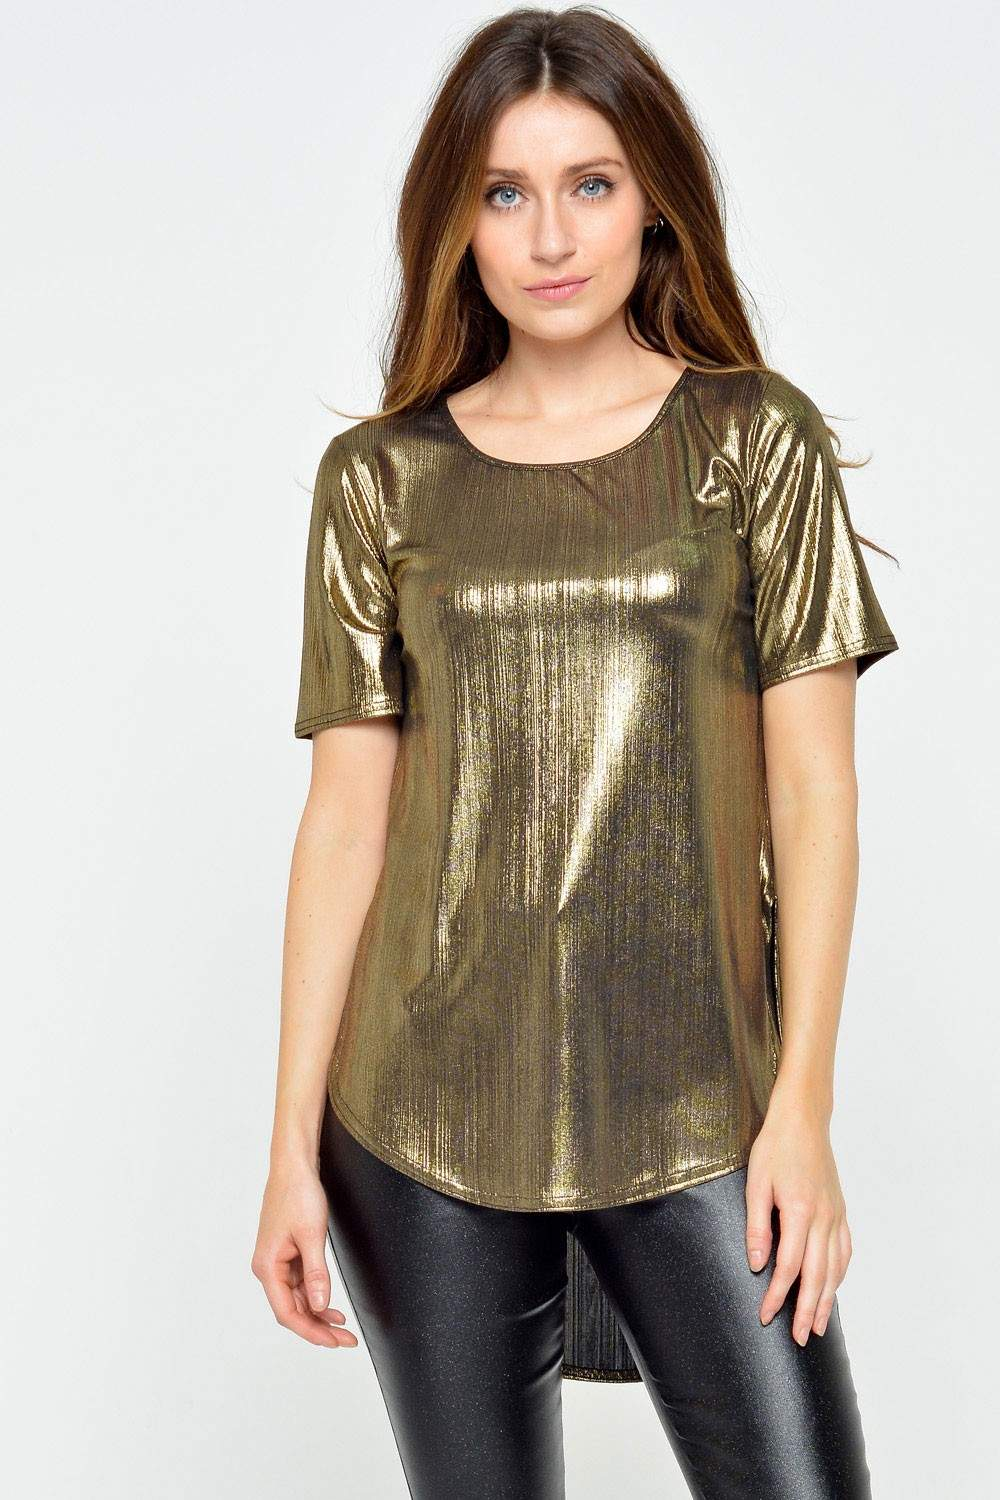 Passion Cami Metallic Top In Gold Iclothing